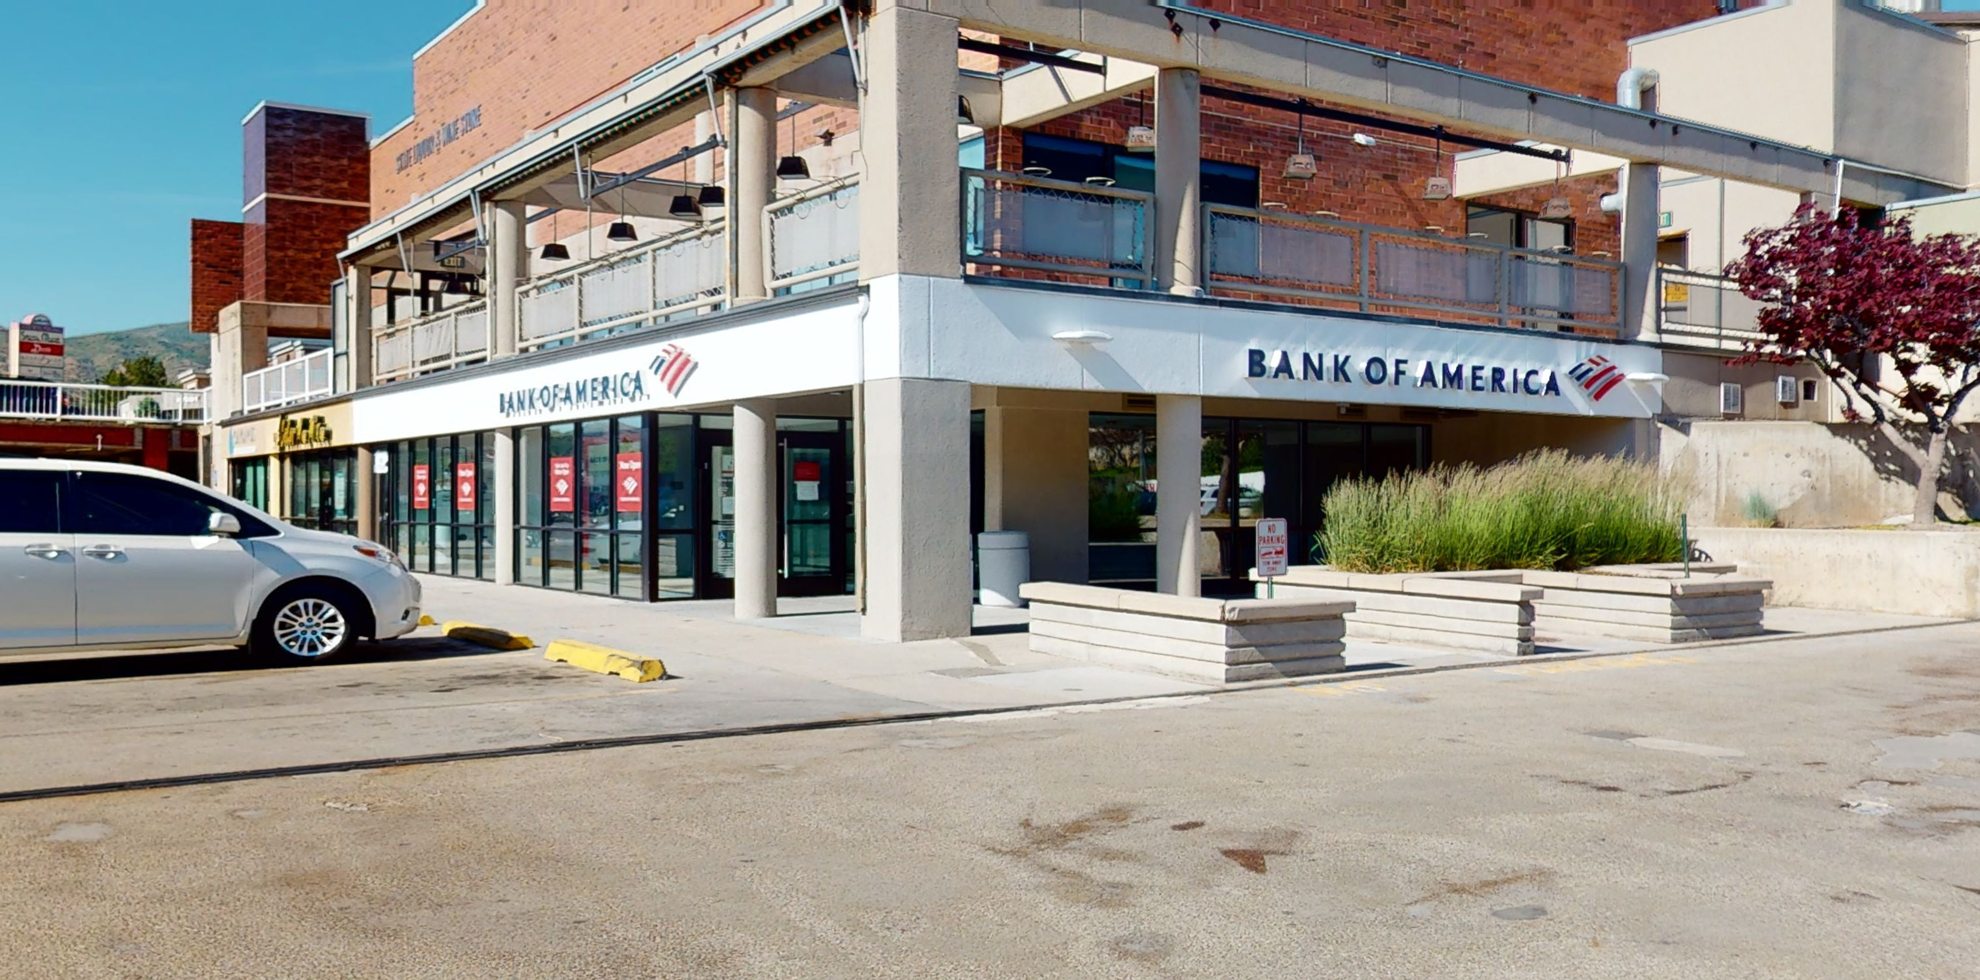 Bank of America financial center with walk-up ATM | 1414 S Foothill Dr STE 5, Salt Lake City, UT 84108